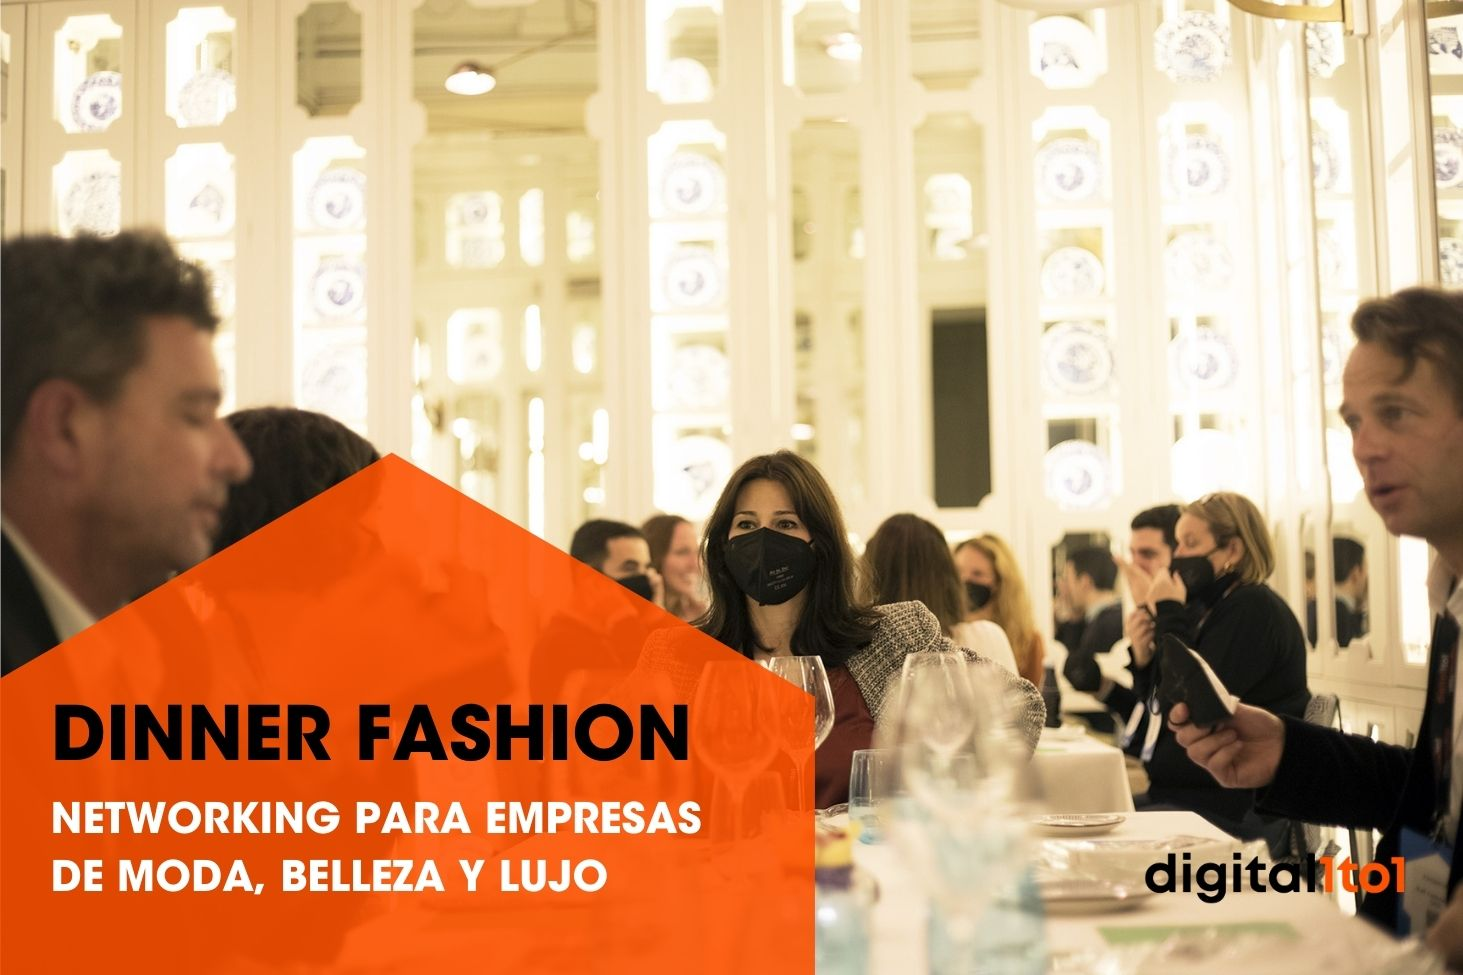 dinner fashion networking empresas moda belleza lujo